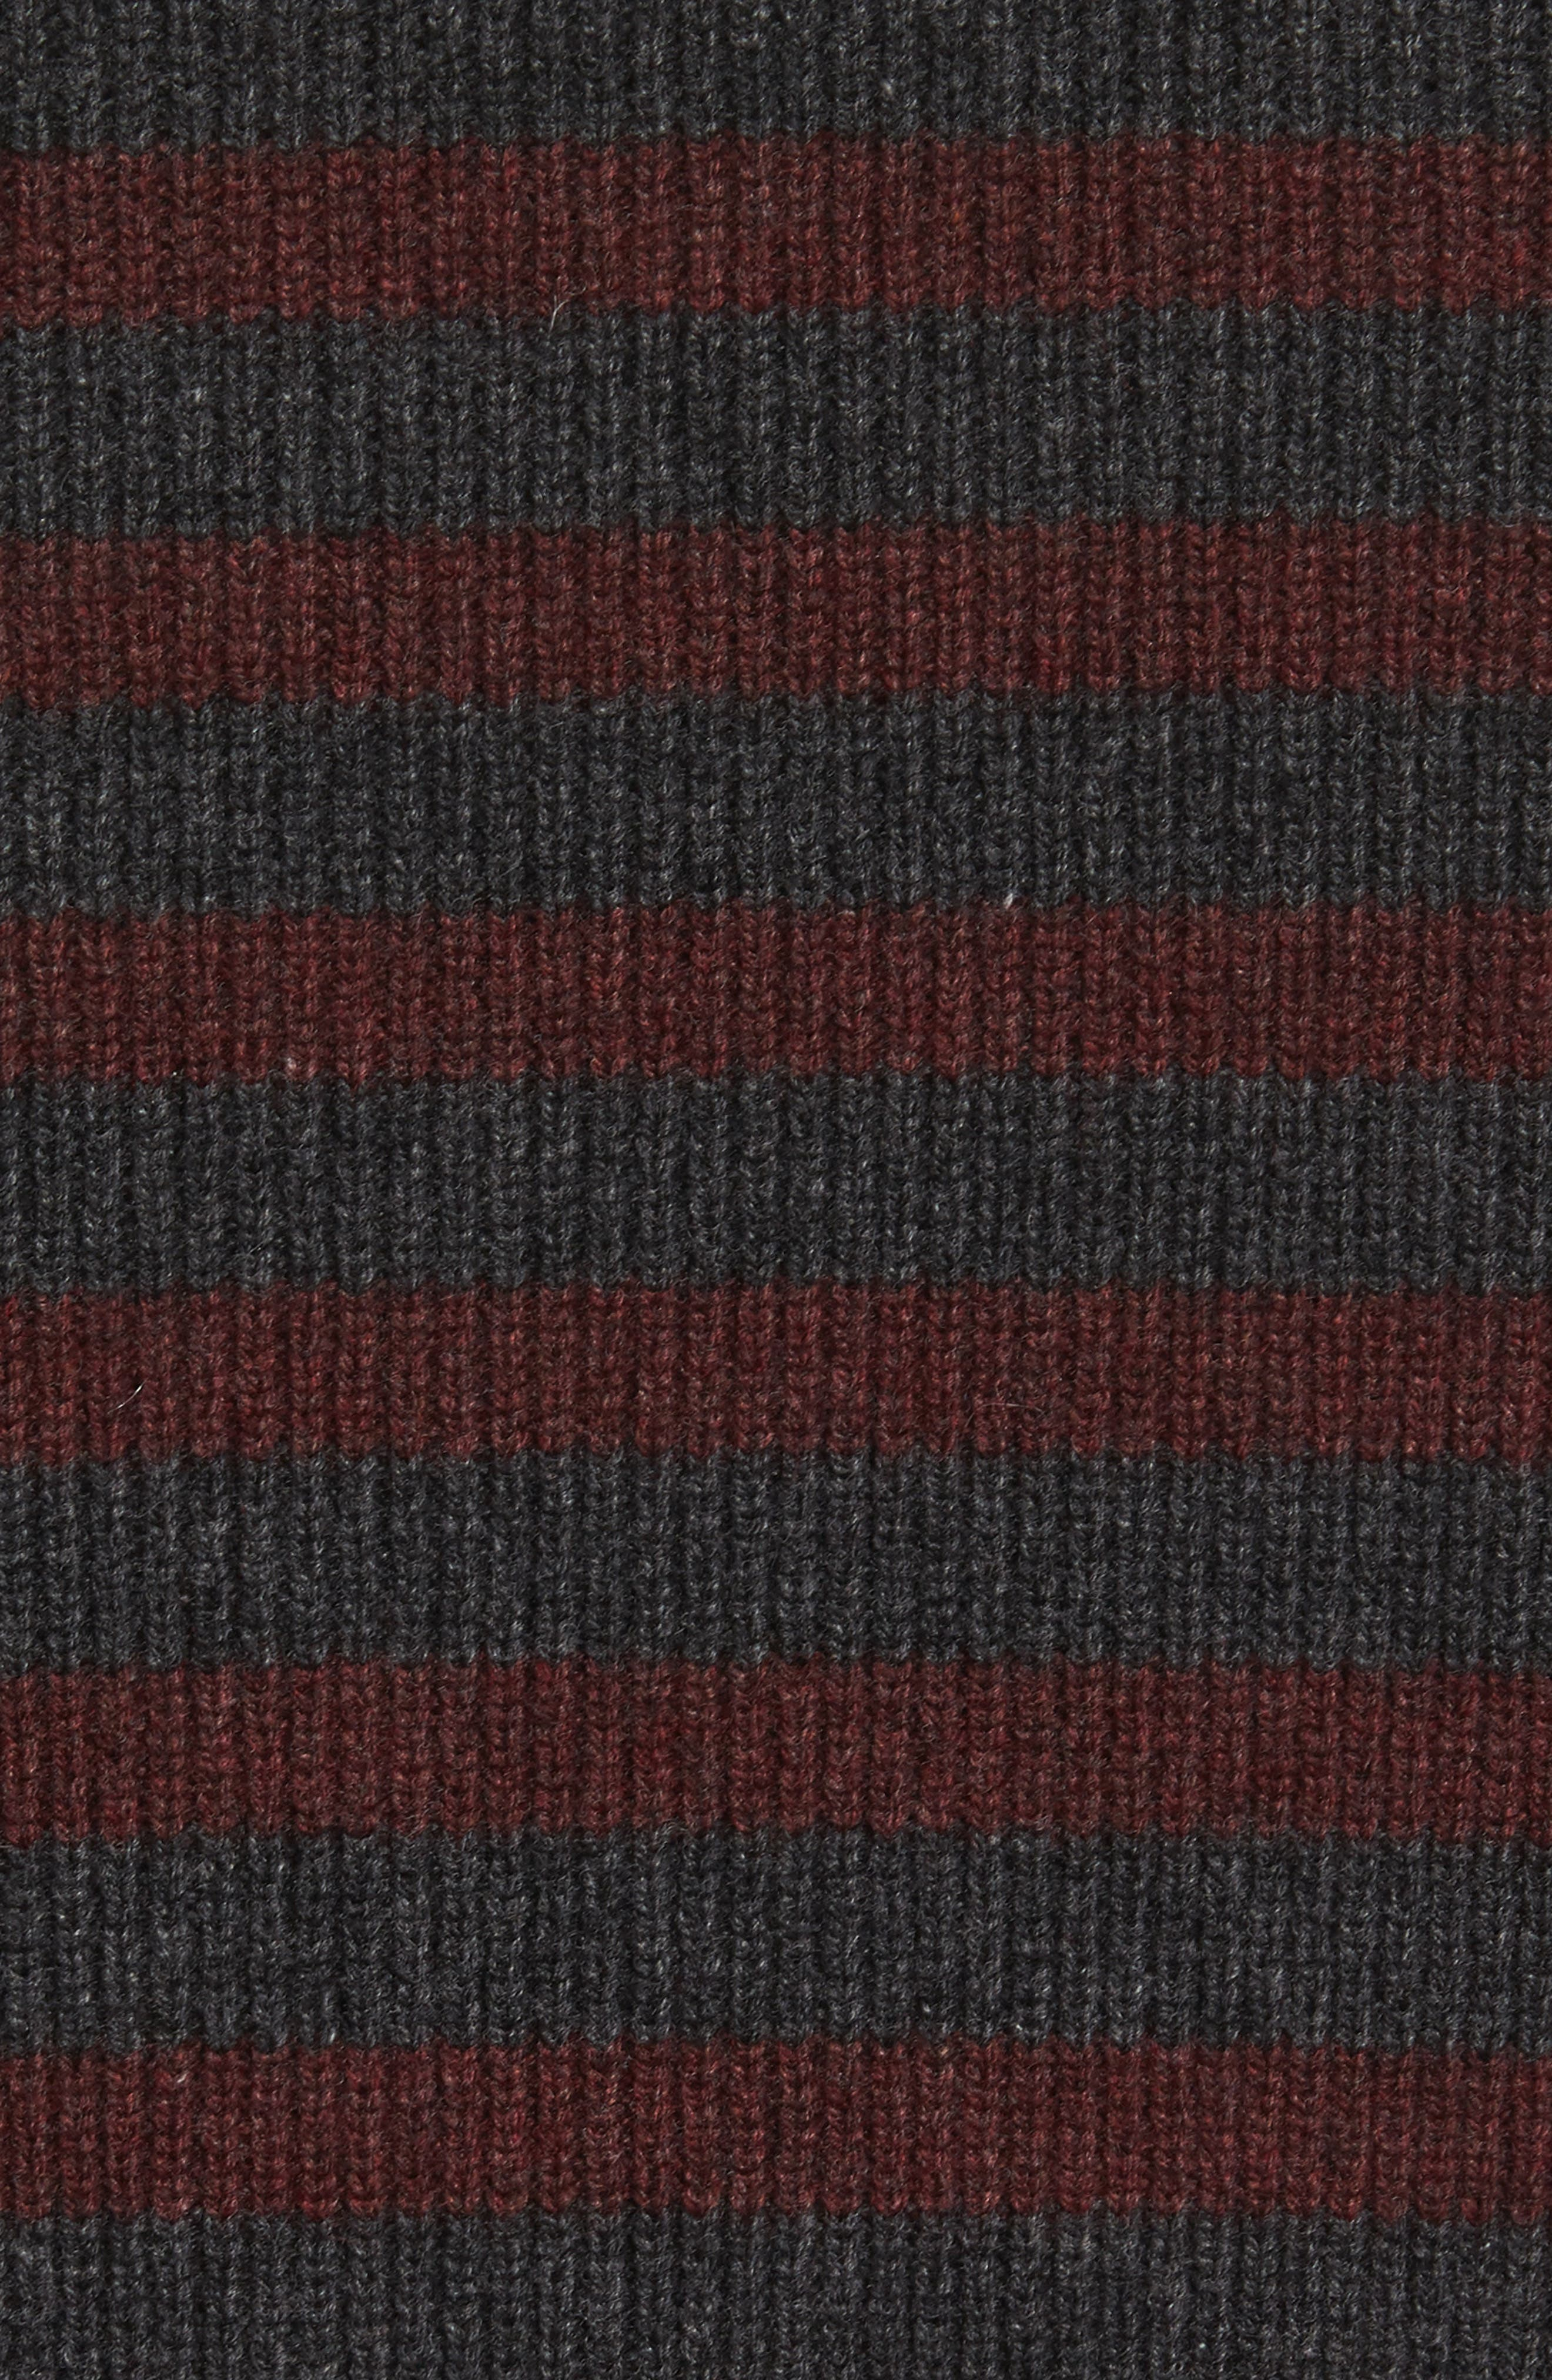 Stripe Wool & Cashmere Sweater,                             Alternate thumbnail 5, color,                             093